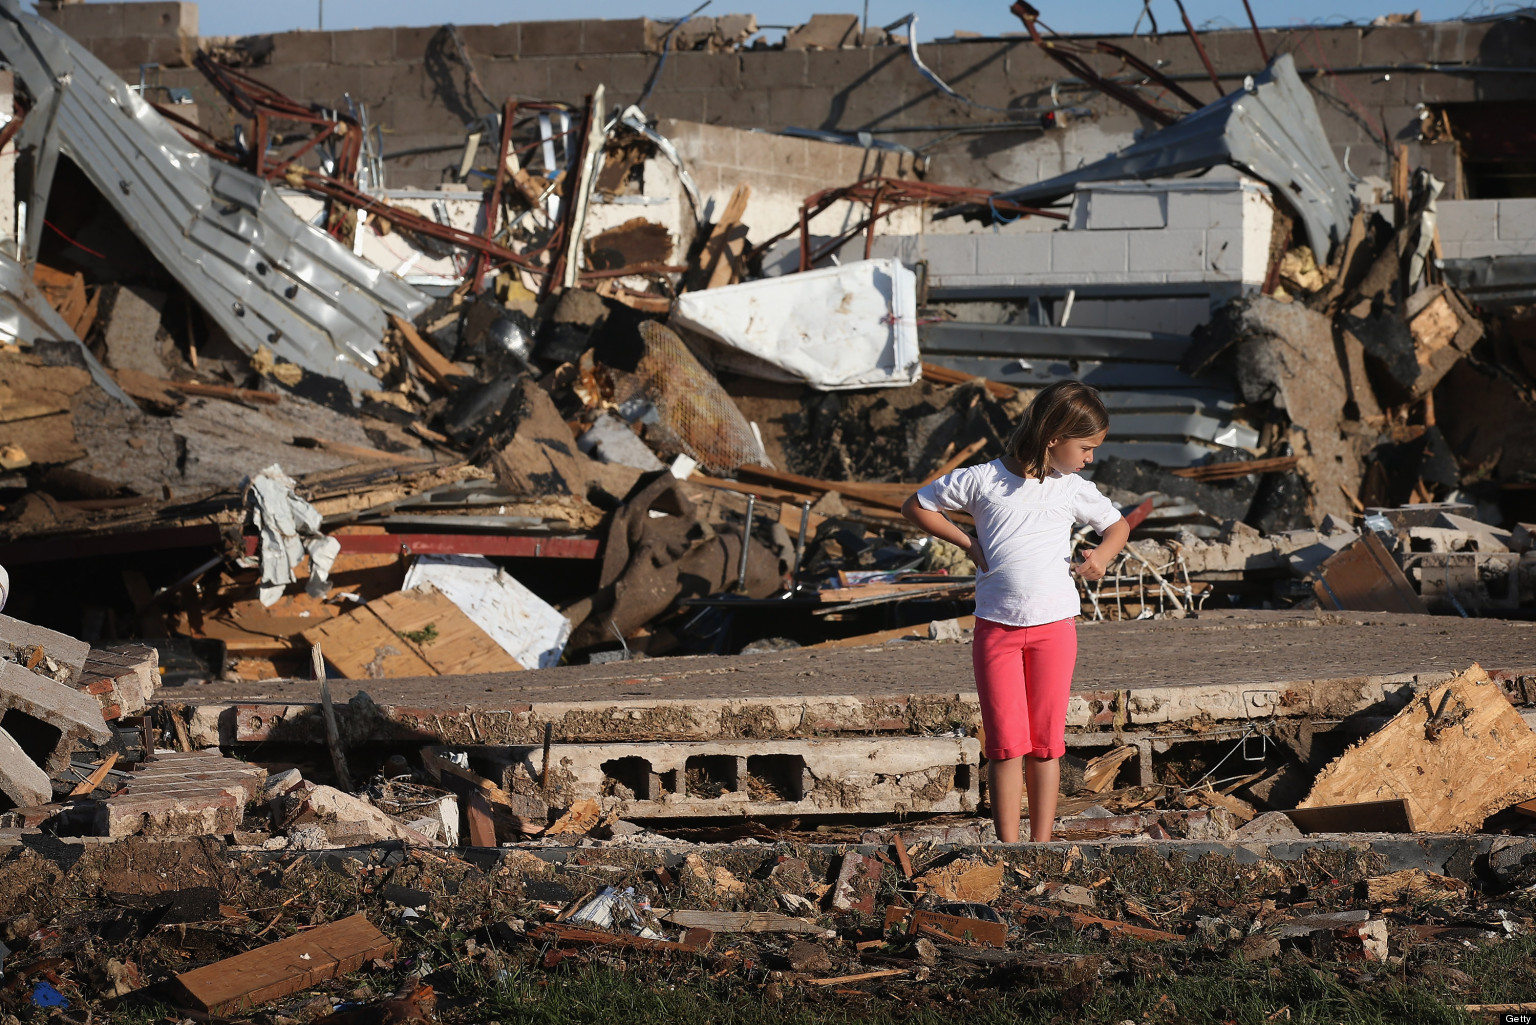 Oklahoma Tornado Recovery: Rescuers Search Rubble For ...